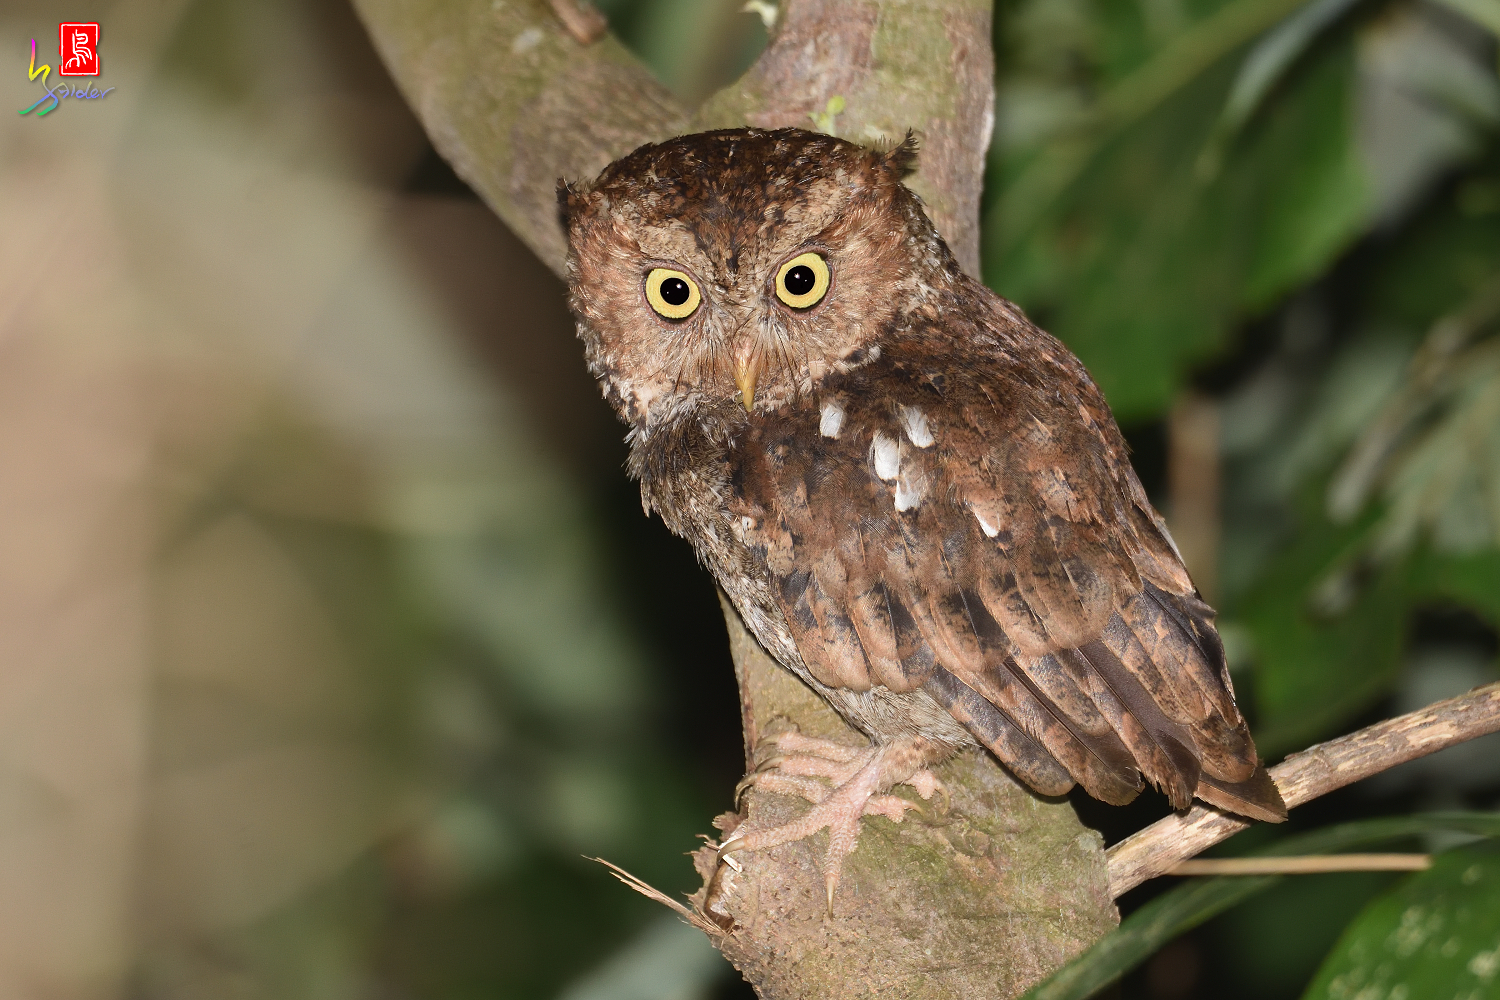 Moutain_Scops_Owl_3167_Redeye